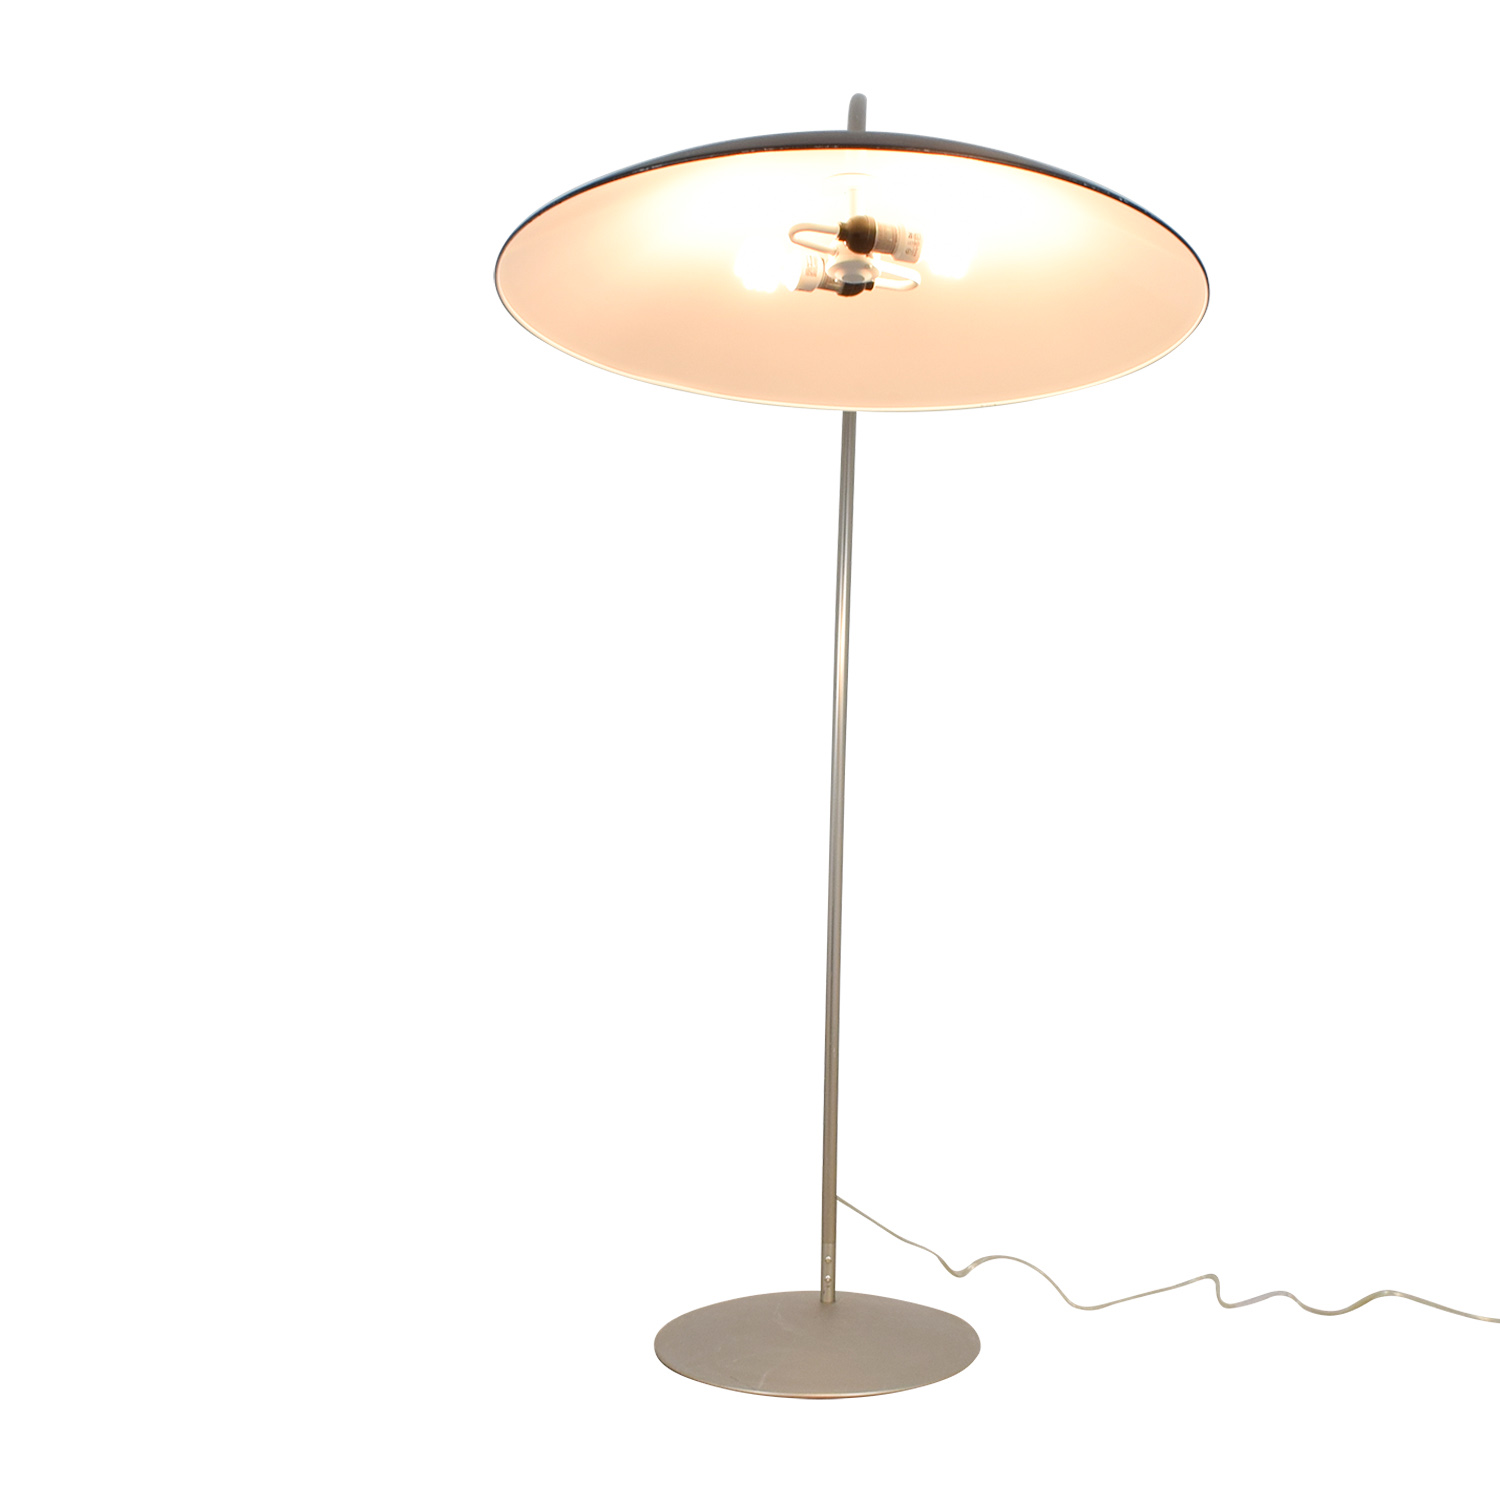 CB2 Atomic Floor Lamp sale